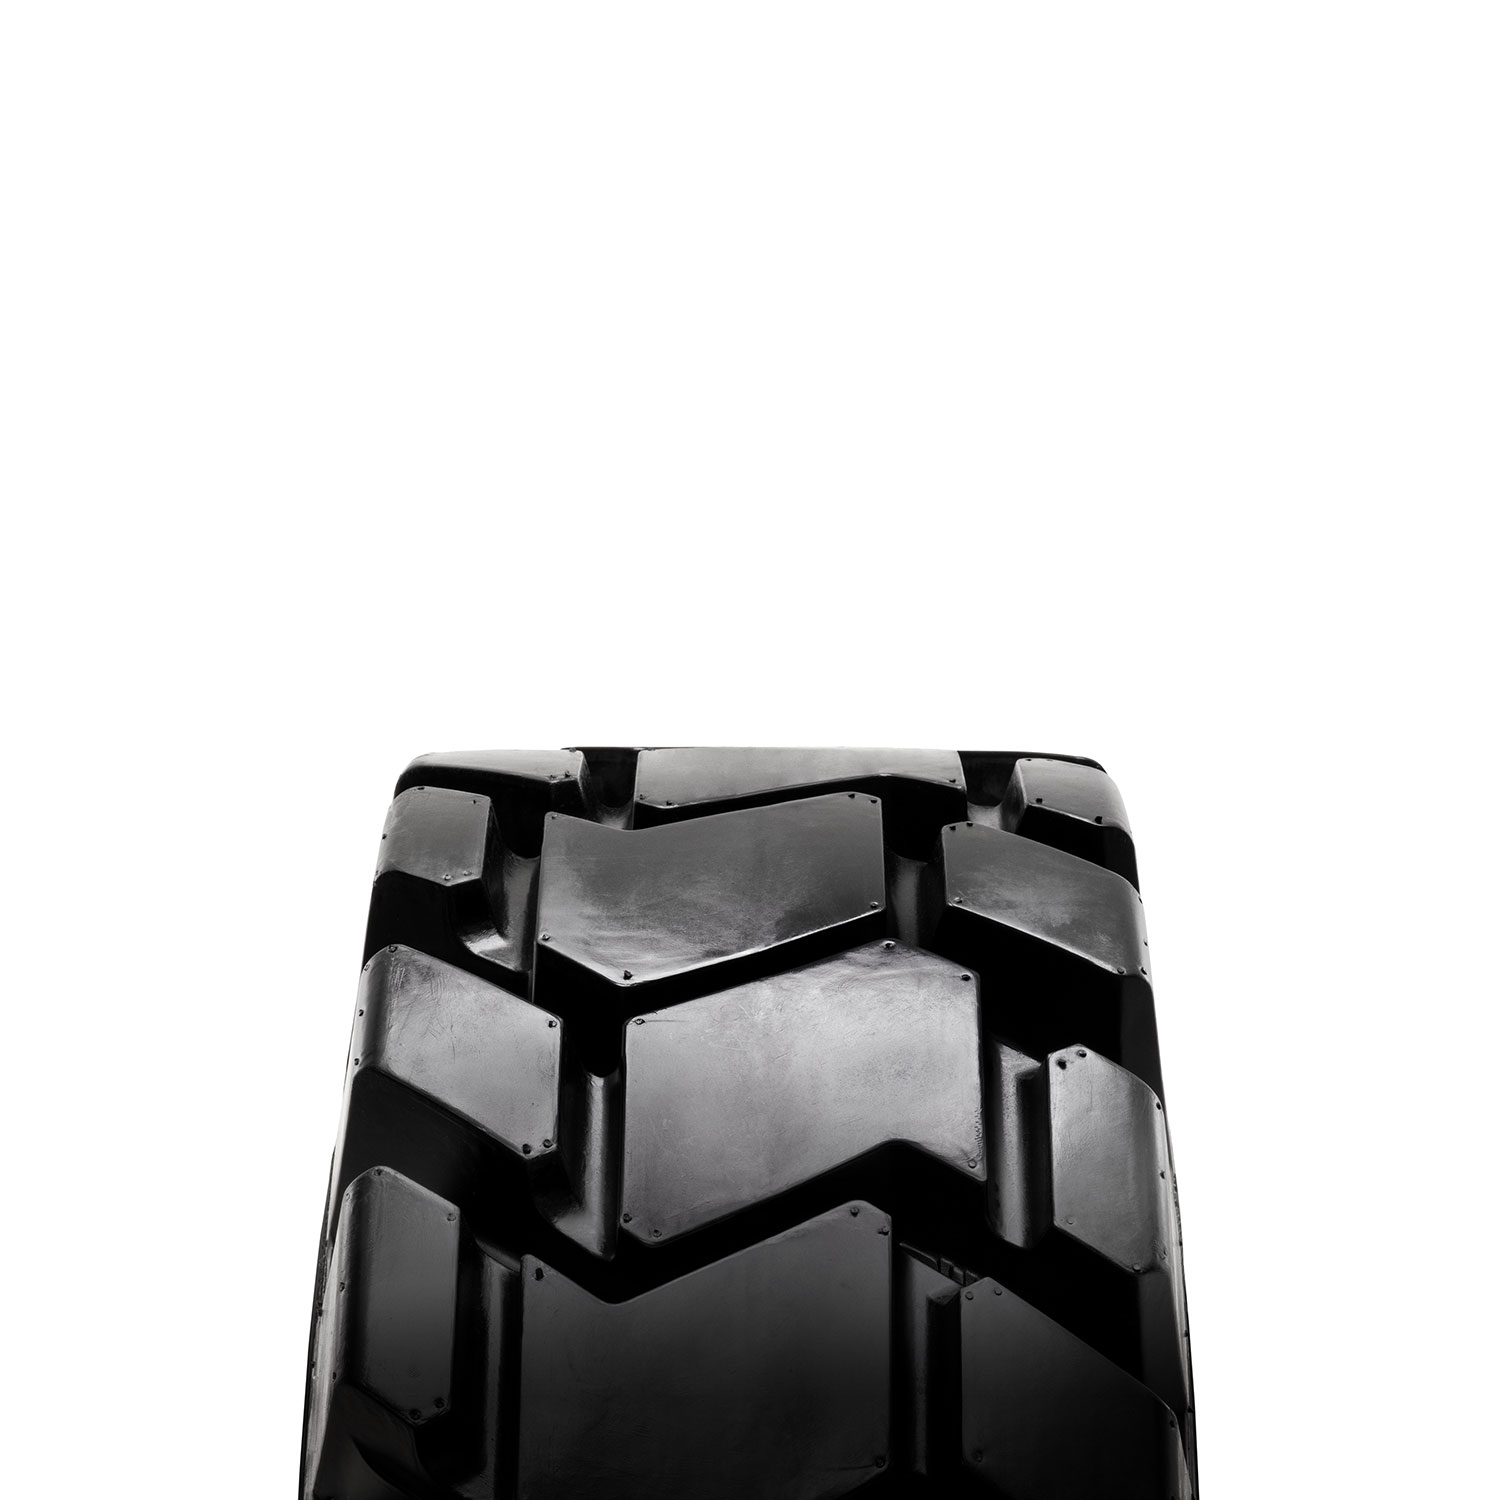 Gomme Nuove Camso 12 - 16.5 R0 12PR SKS 775 STANDARD NHS pneumatici nuovi Estivo